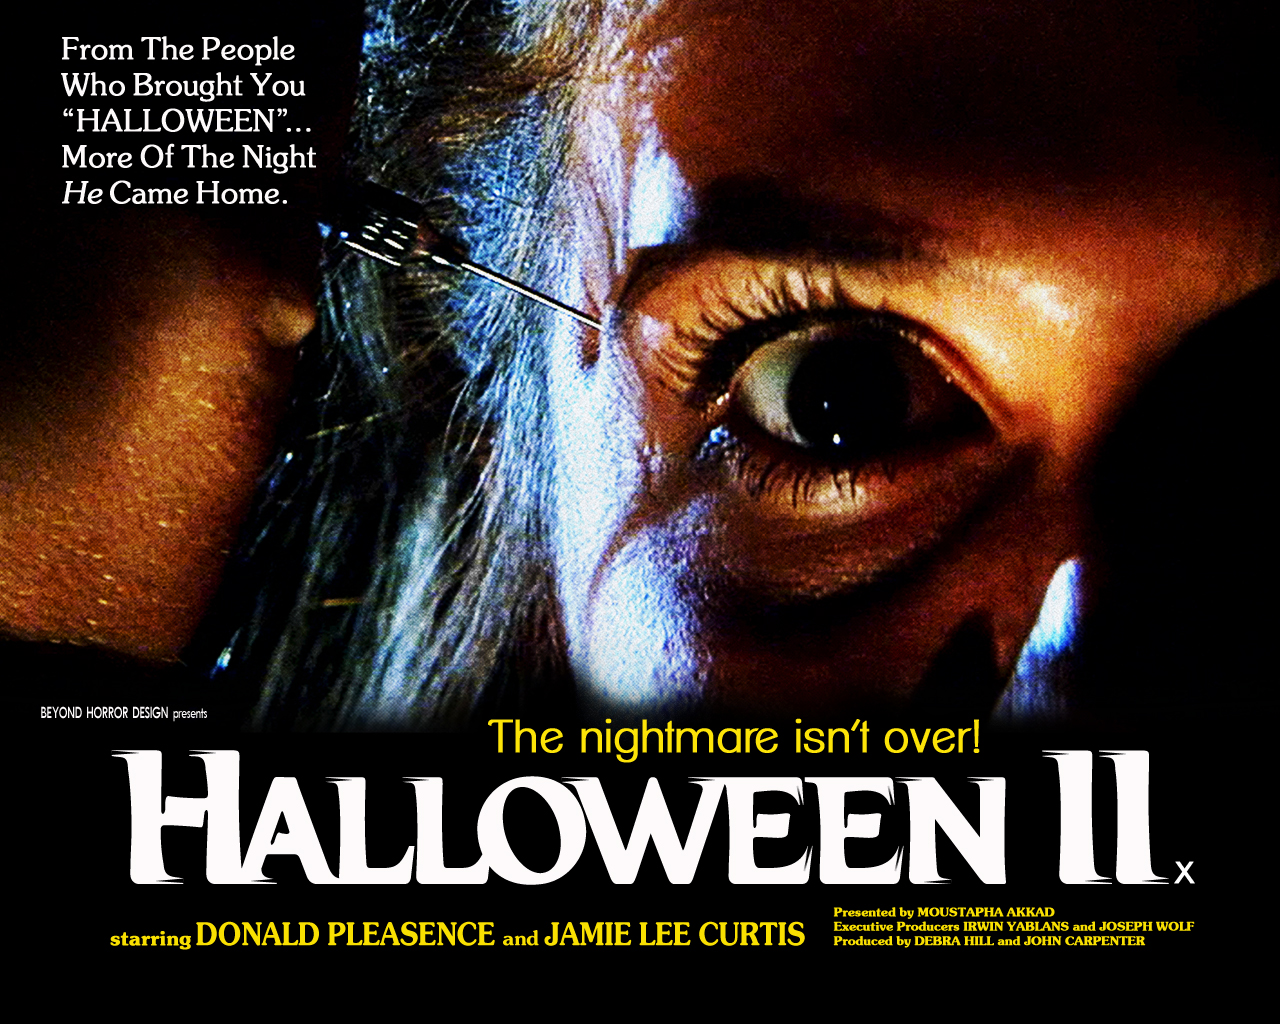 Halloween II 1981 Poster Wallpaper Beyond Horror Design -